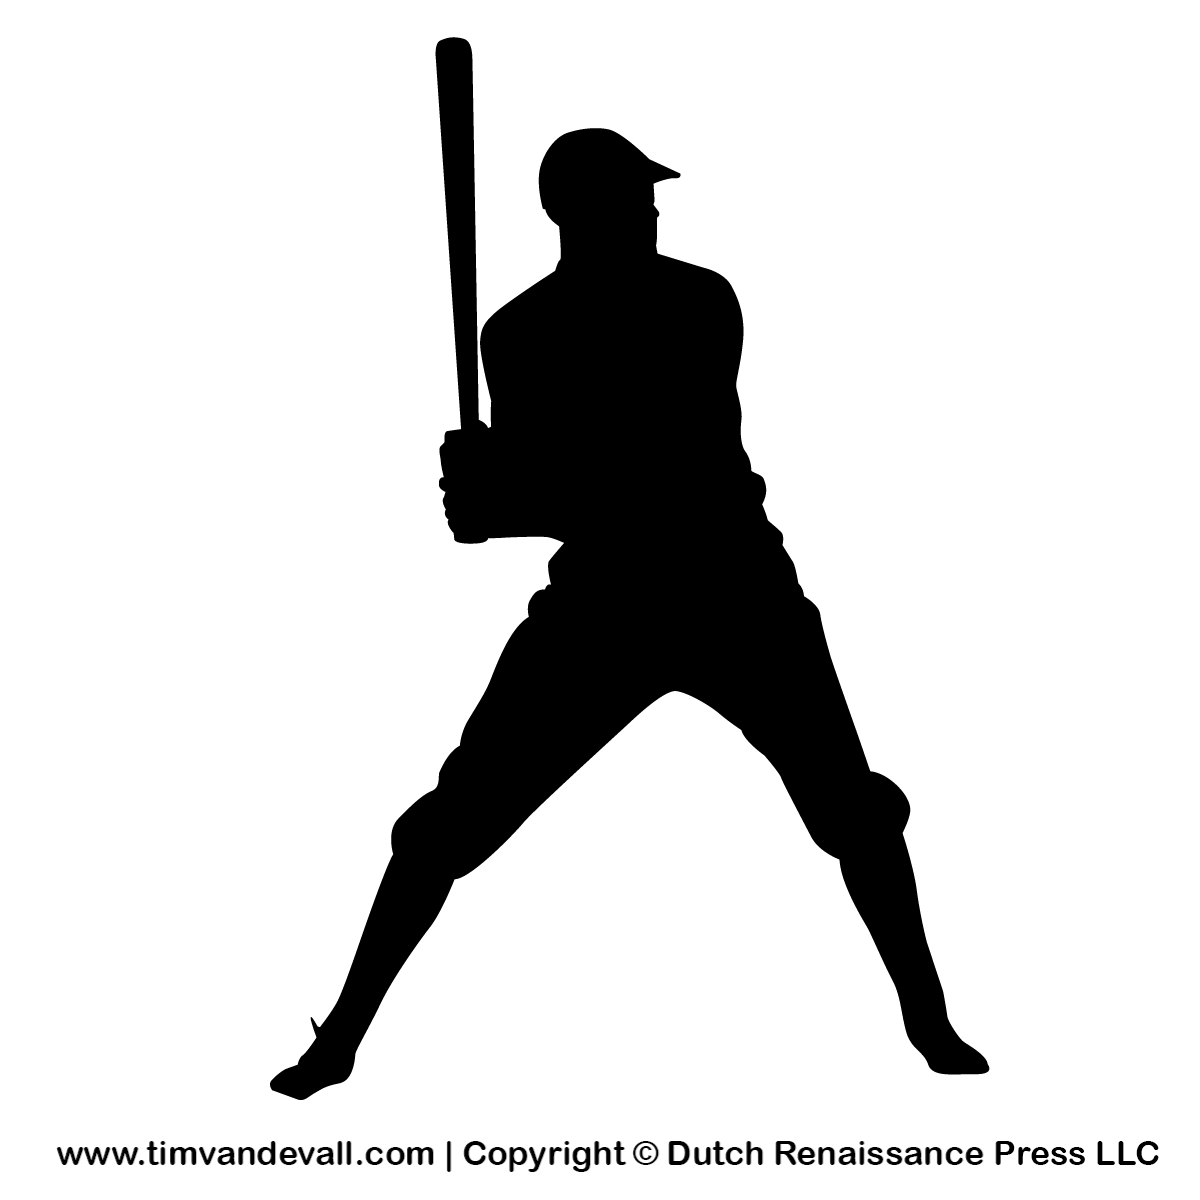 free clipart baseball player silhouette - photo #15